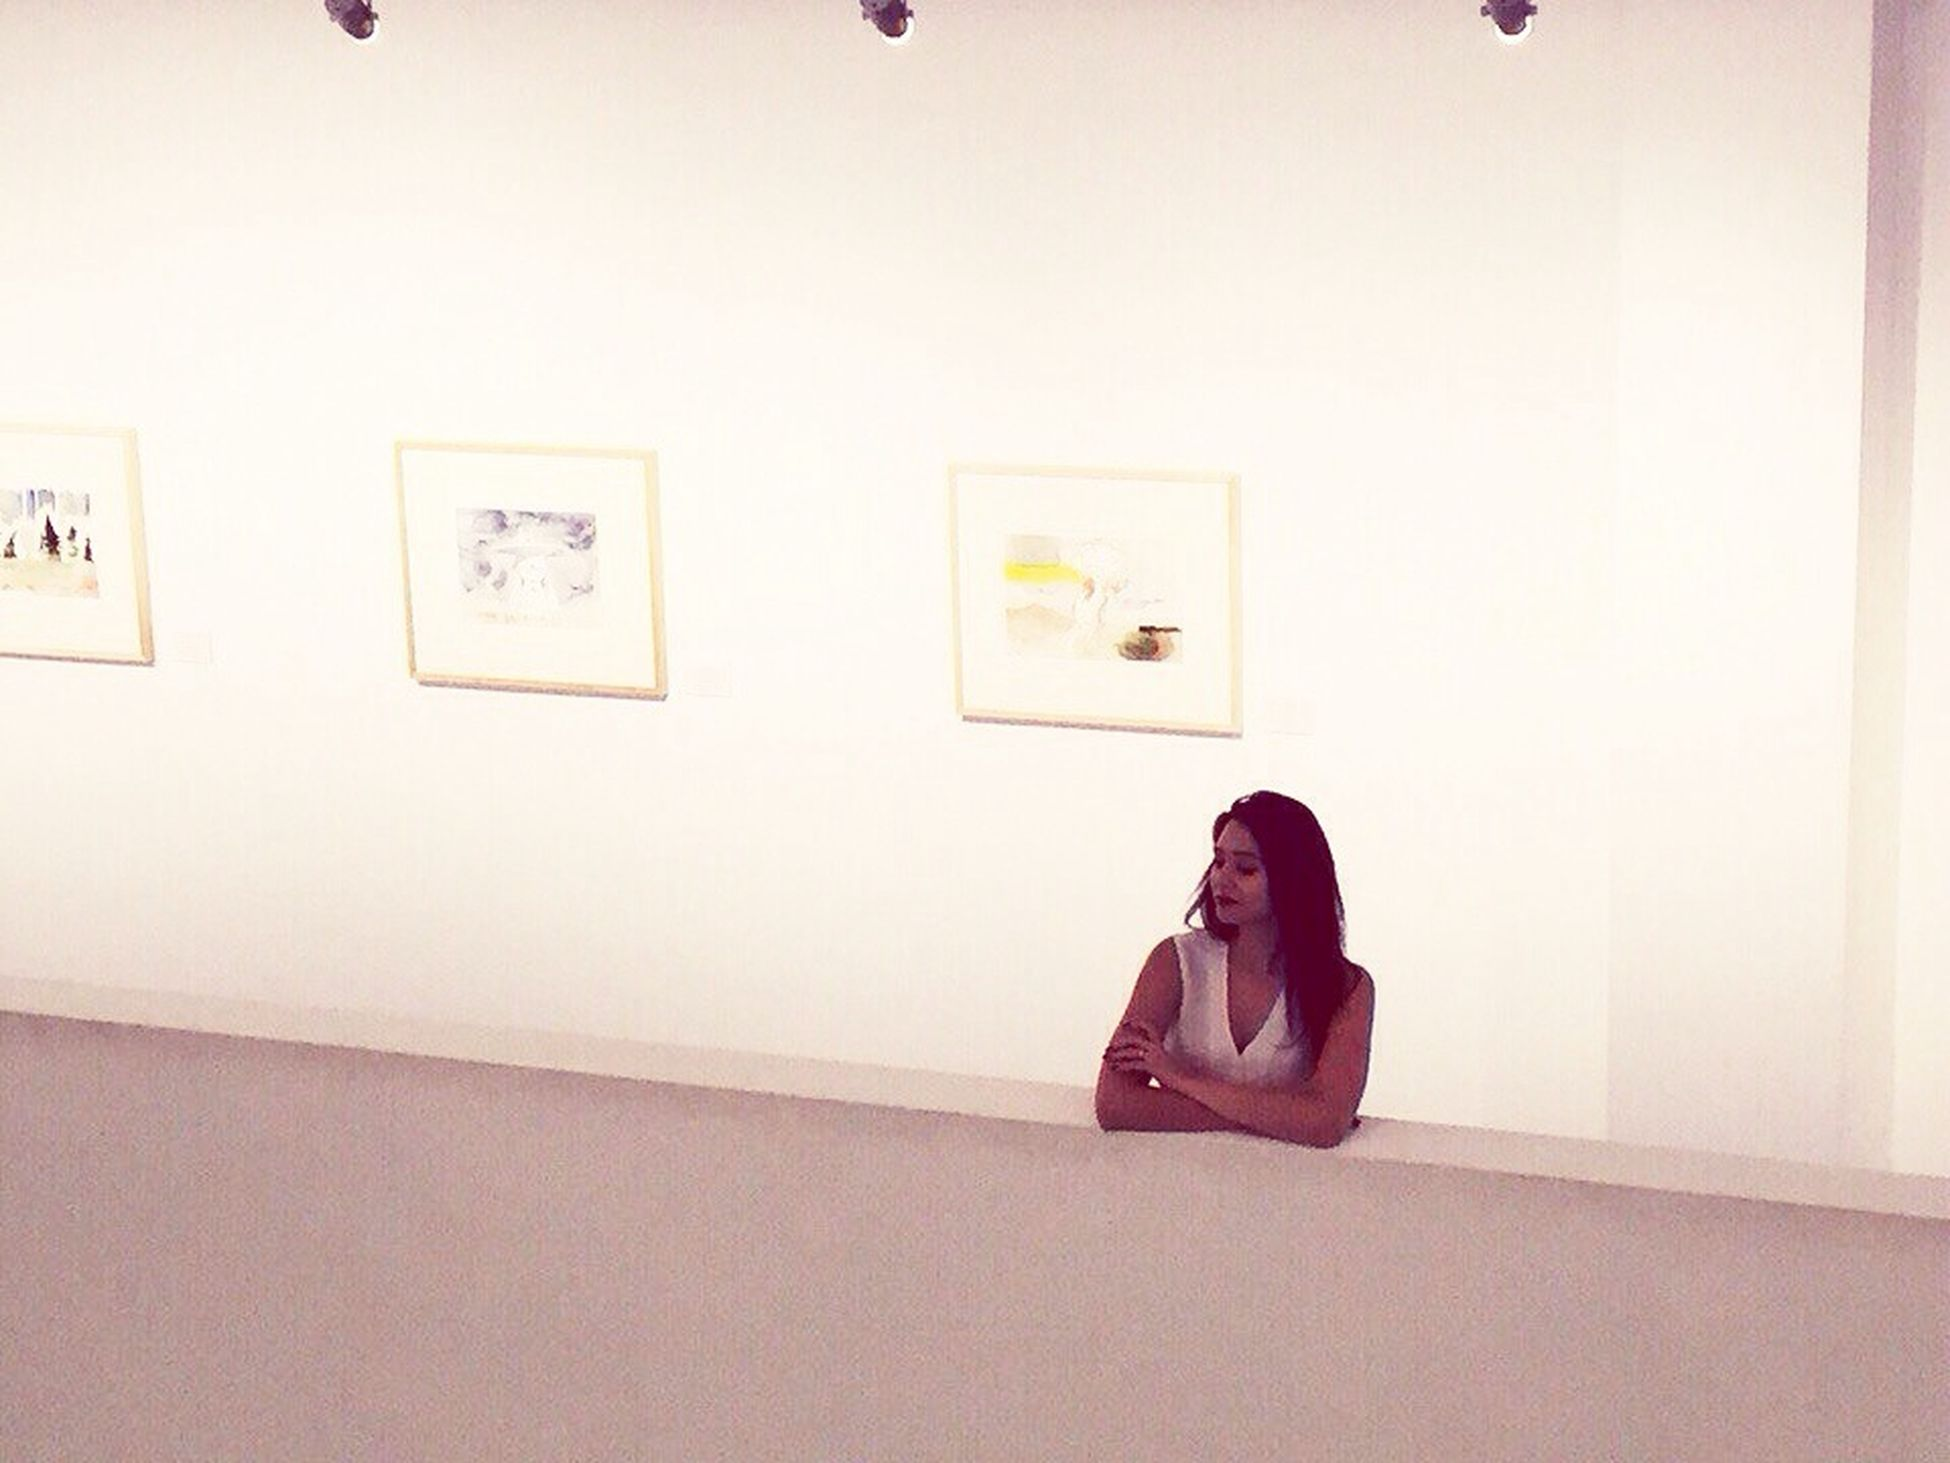 Russian Girl Beuty Minimalism White ArtWork Artmuseums